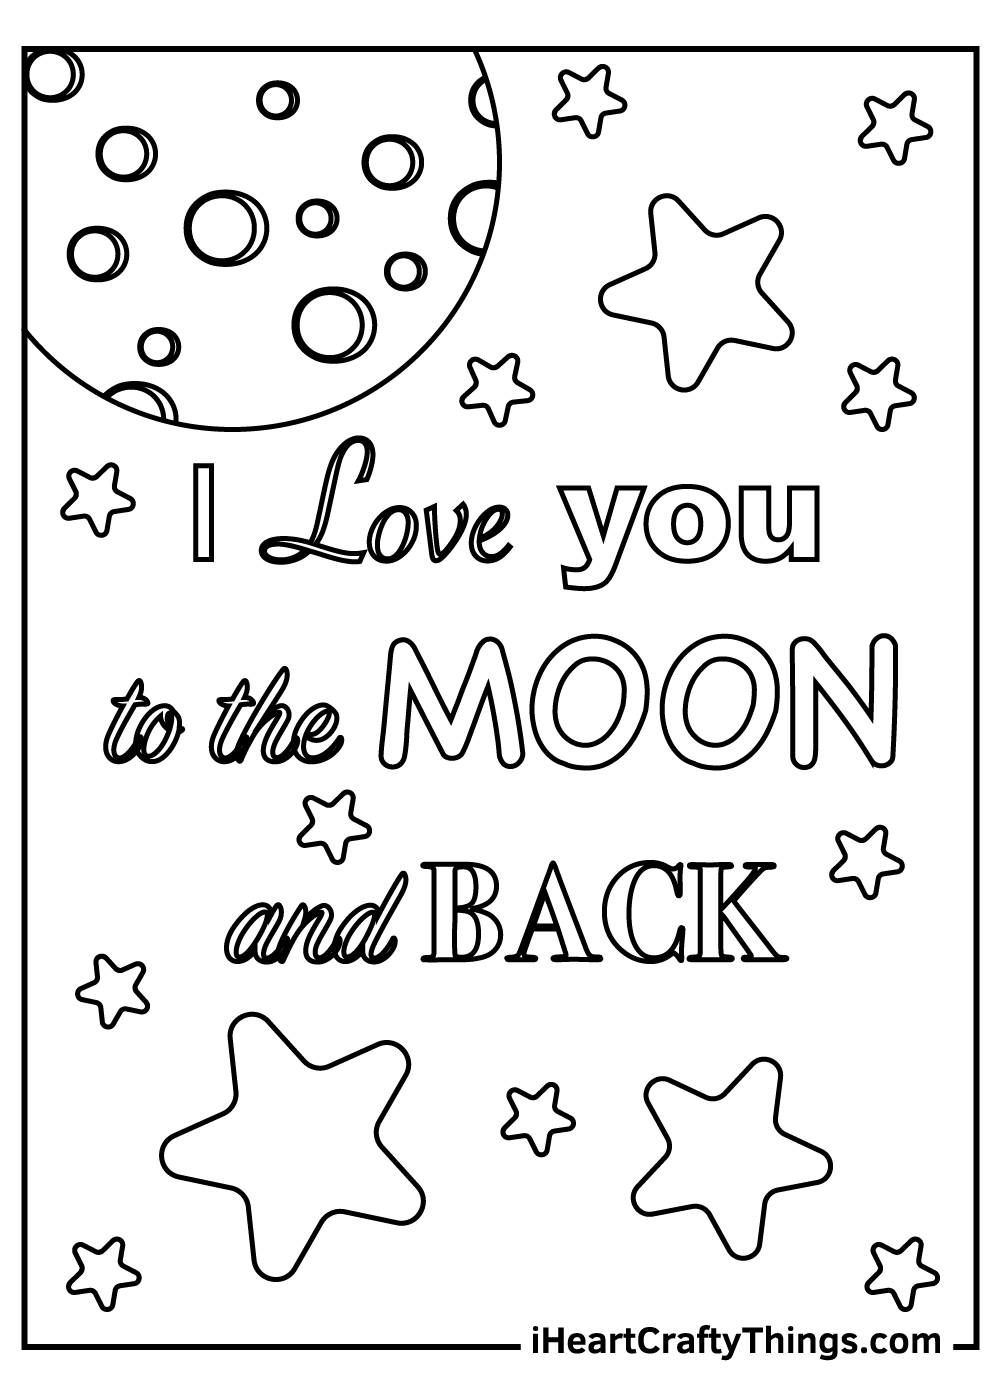 I Love to the Moon and Back coloring pages free pdf